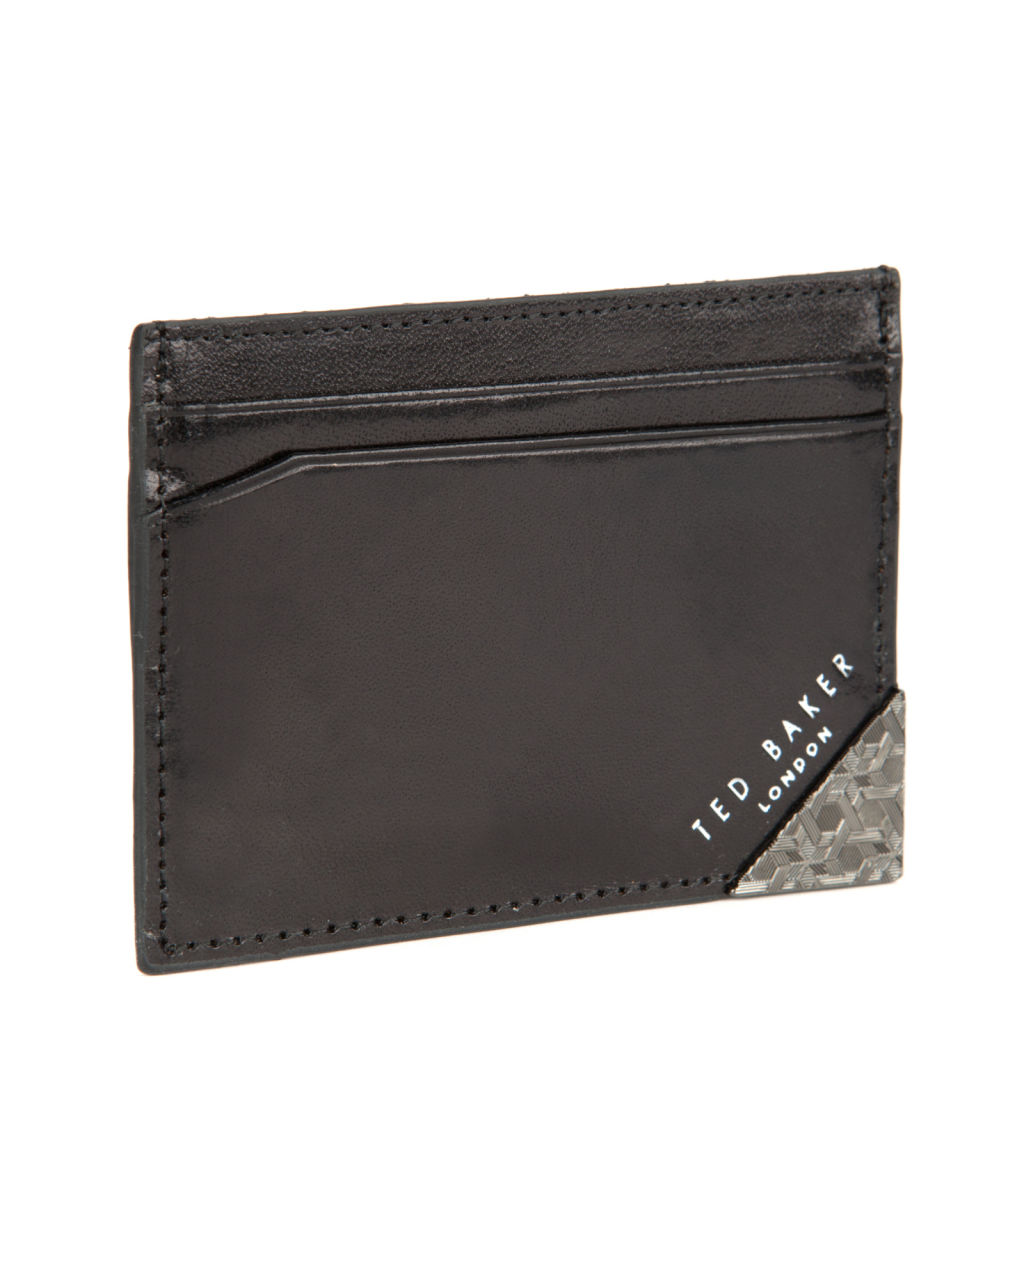 mens wallet sales, mens wallets, valentines day gft ideas for men 2015, valentines gifts for him, valentines gift ideas for him, lovesales